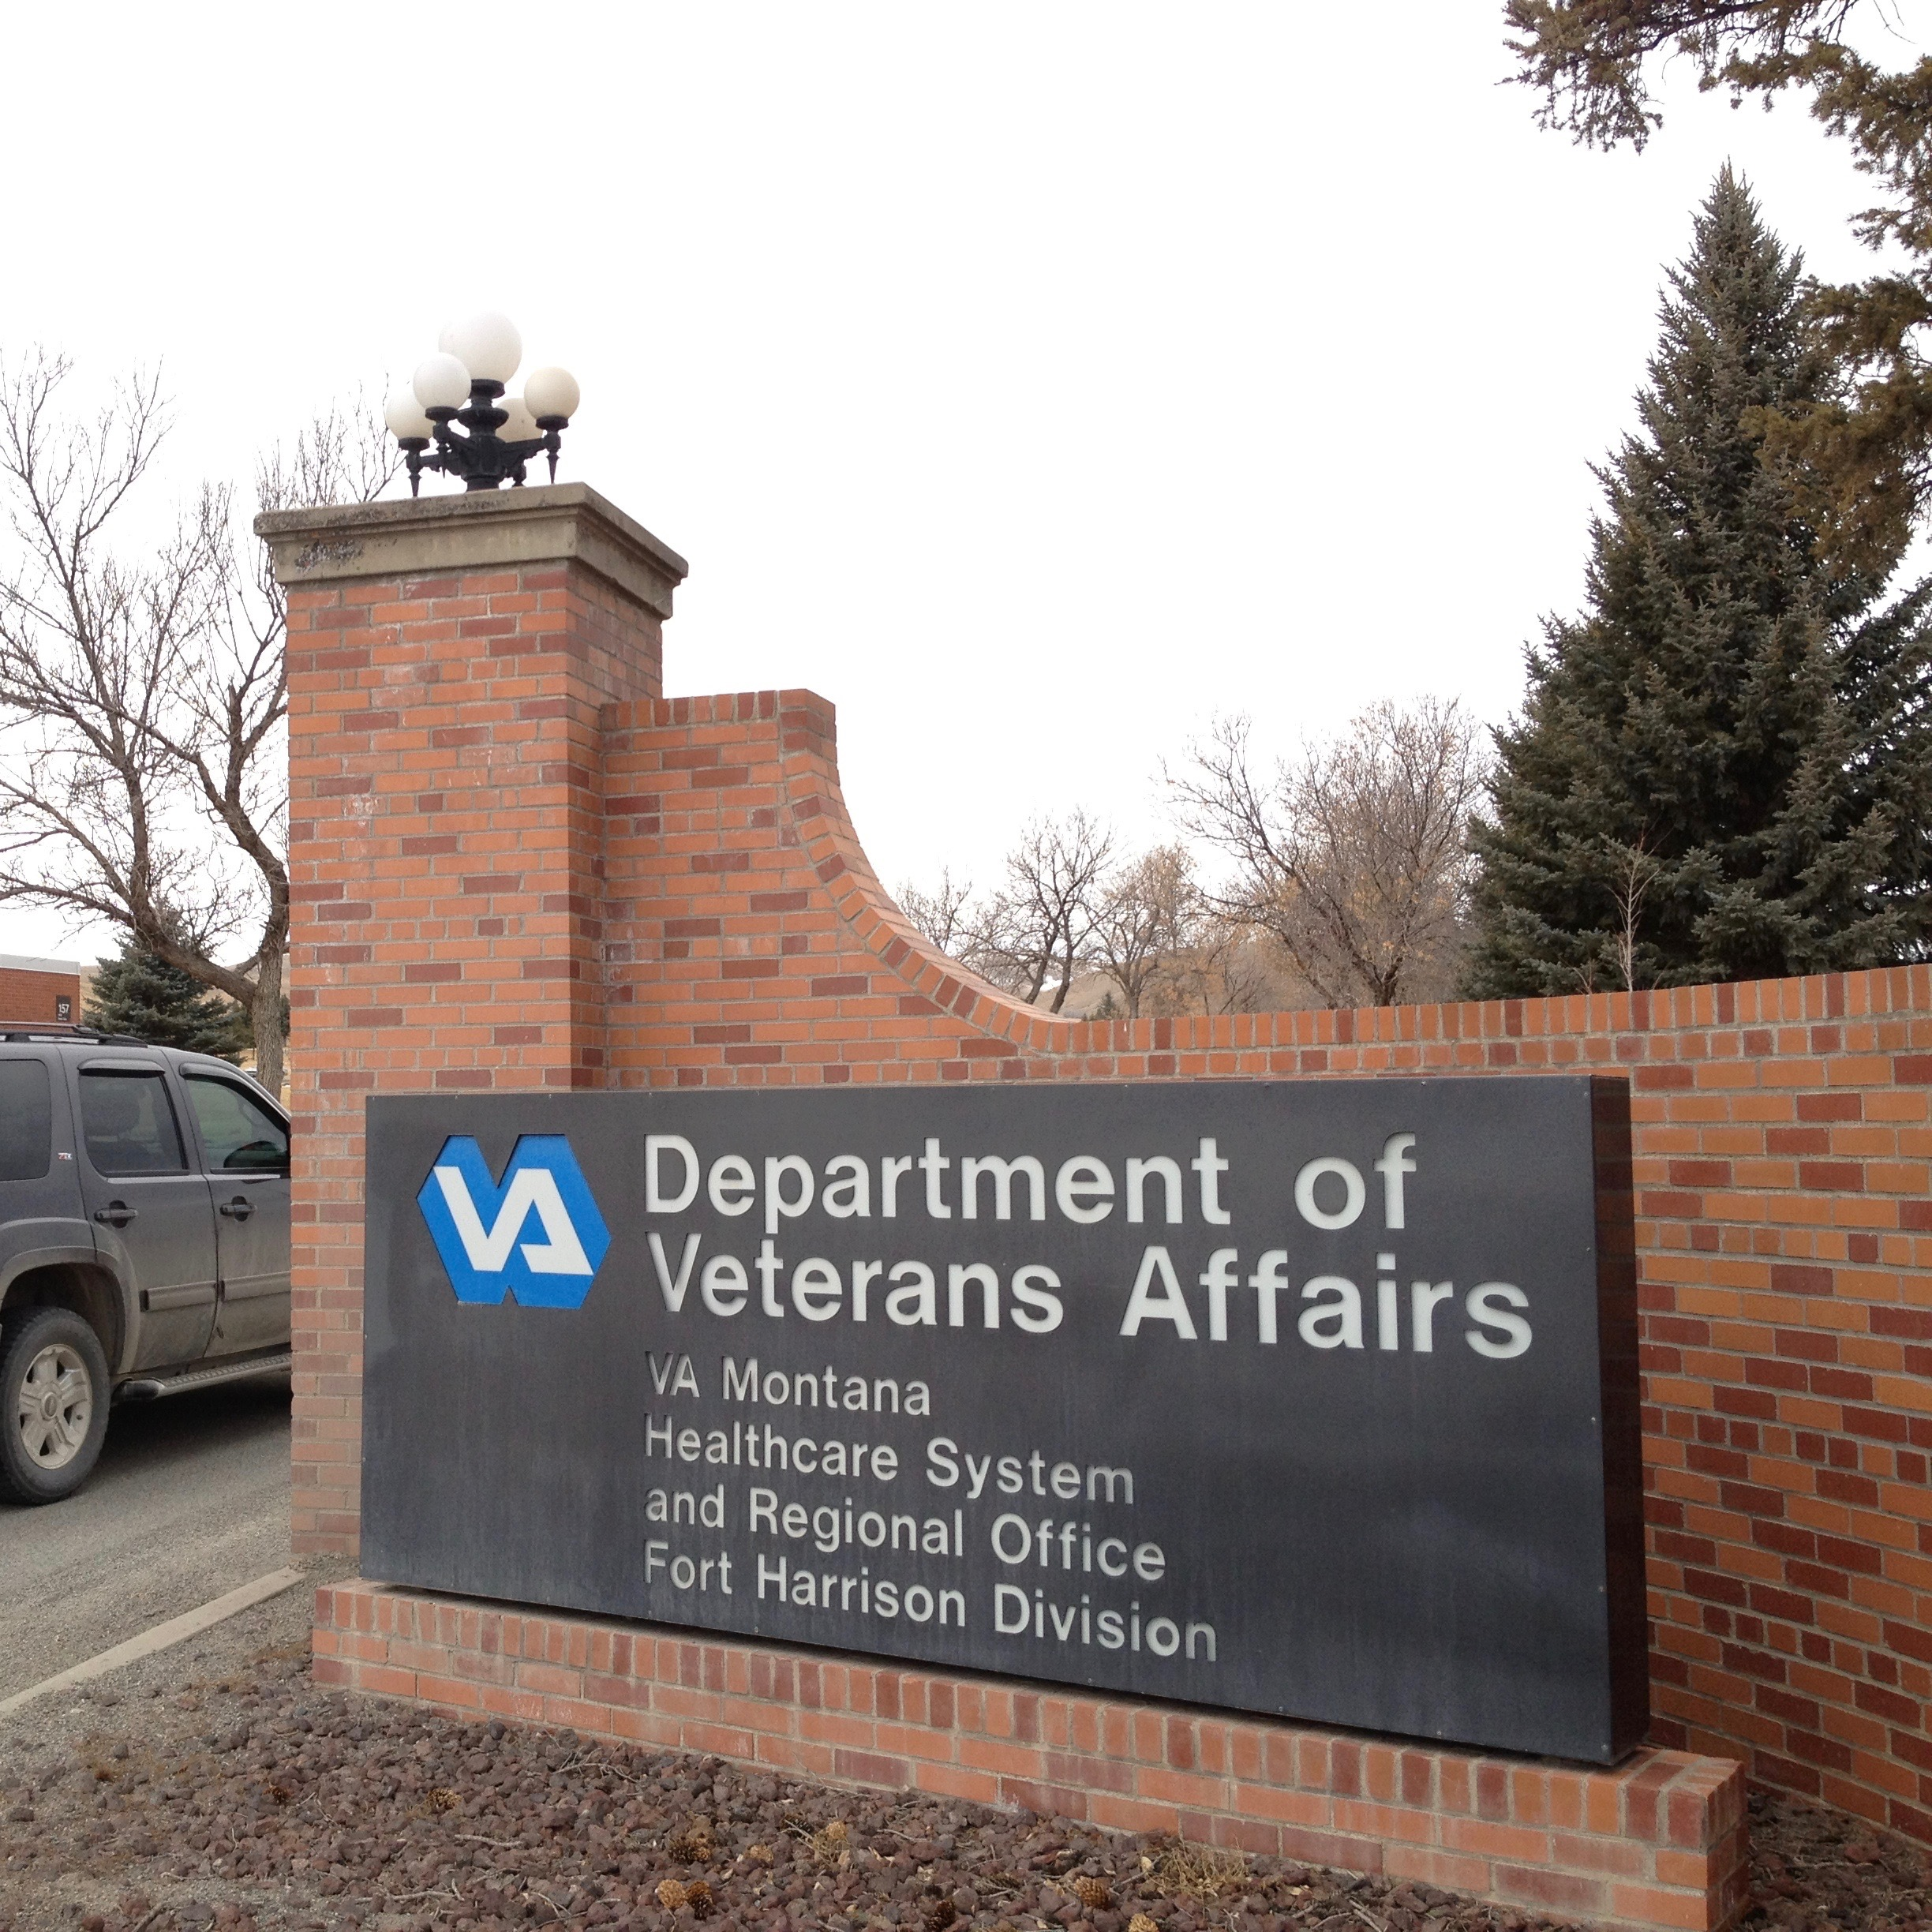 VA Hired Doctors Who Had Felony Convictions Or Multiple Malpractice Claims On Their Records [VIDEO]